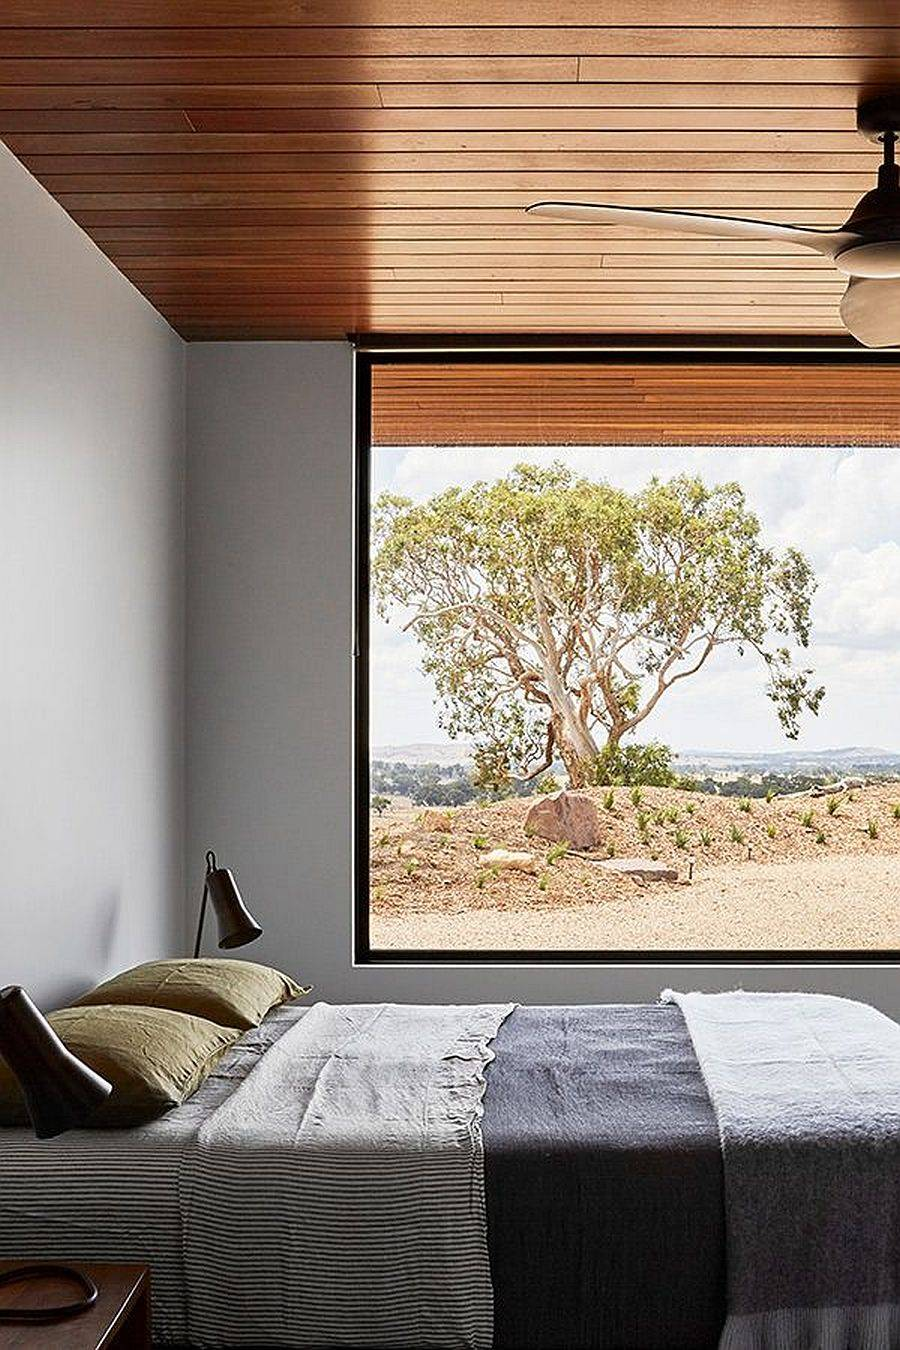 Bedroom-of-the-house-with-large-widnows-that-bring-the-views-in-32177